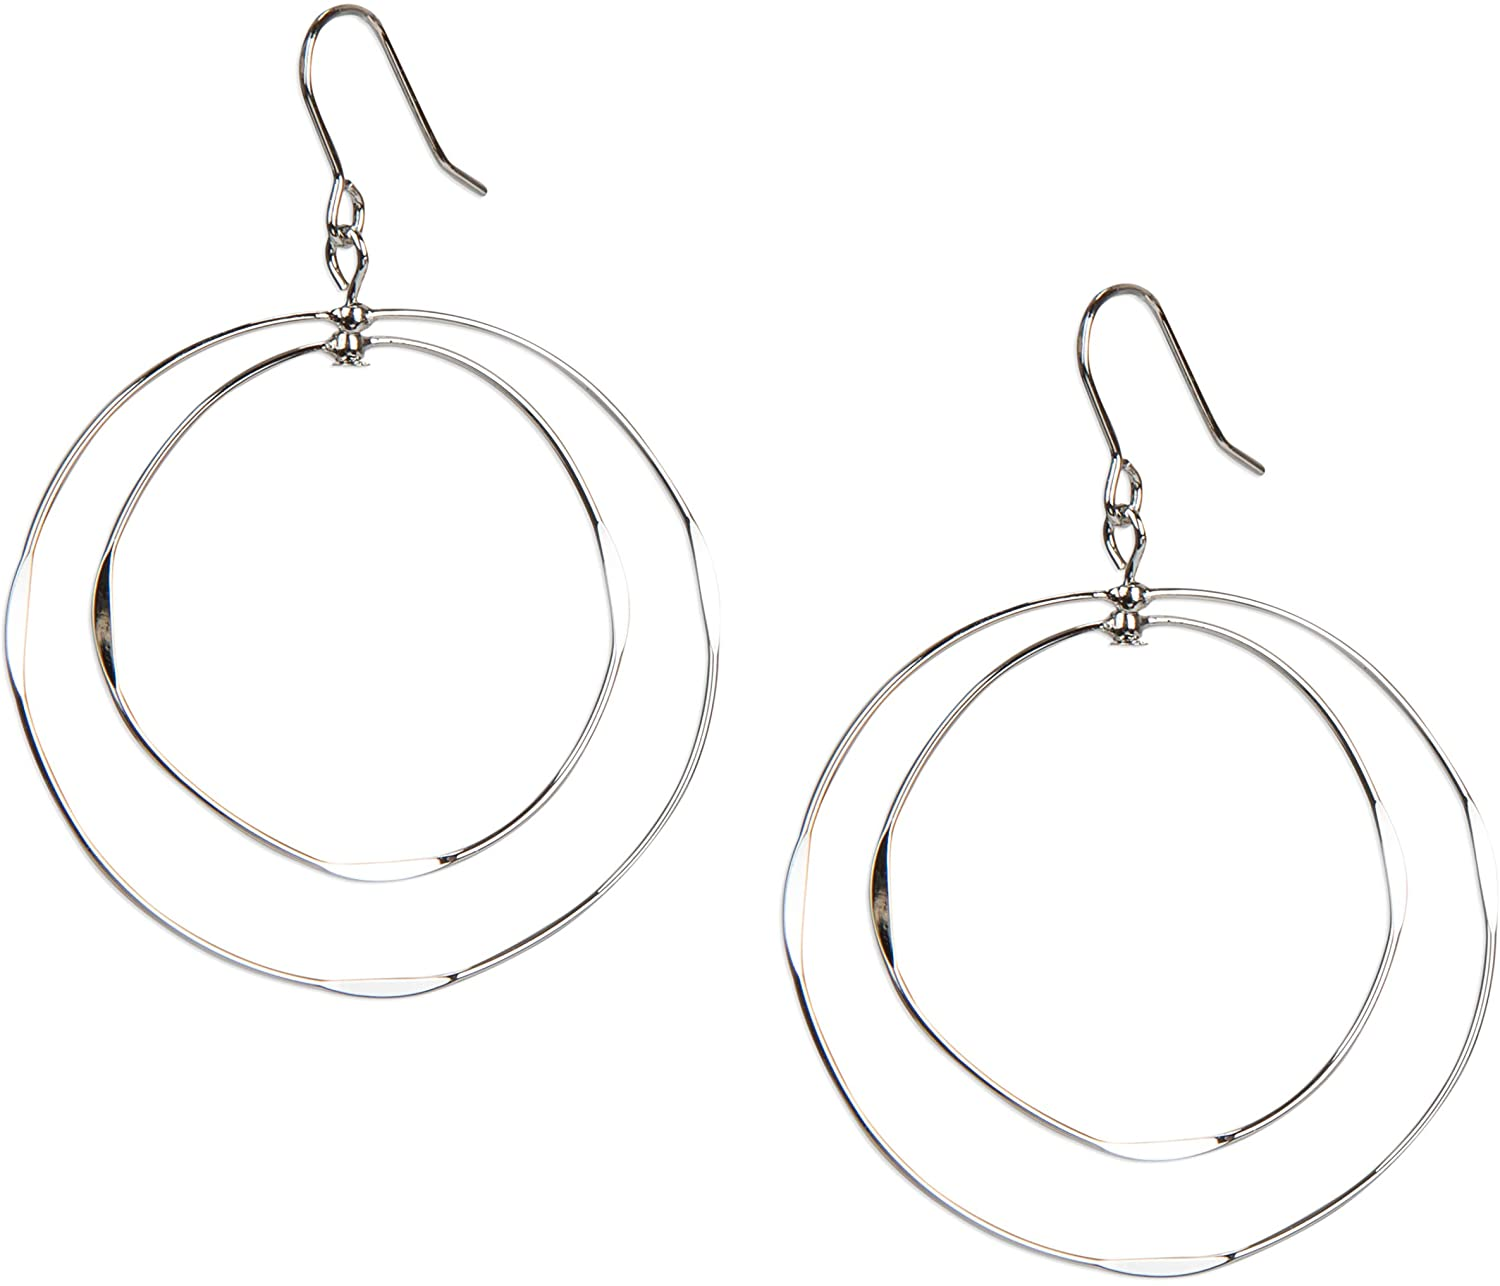 SPUNKYsoul Thin Double Hoop Light Weight Loop Earrings in Gold and Silver for Women